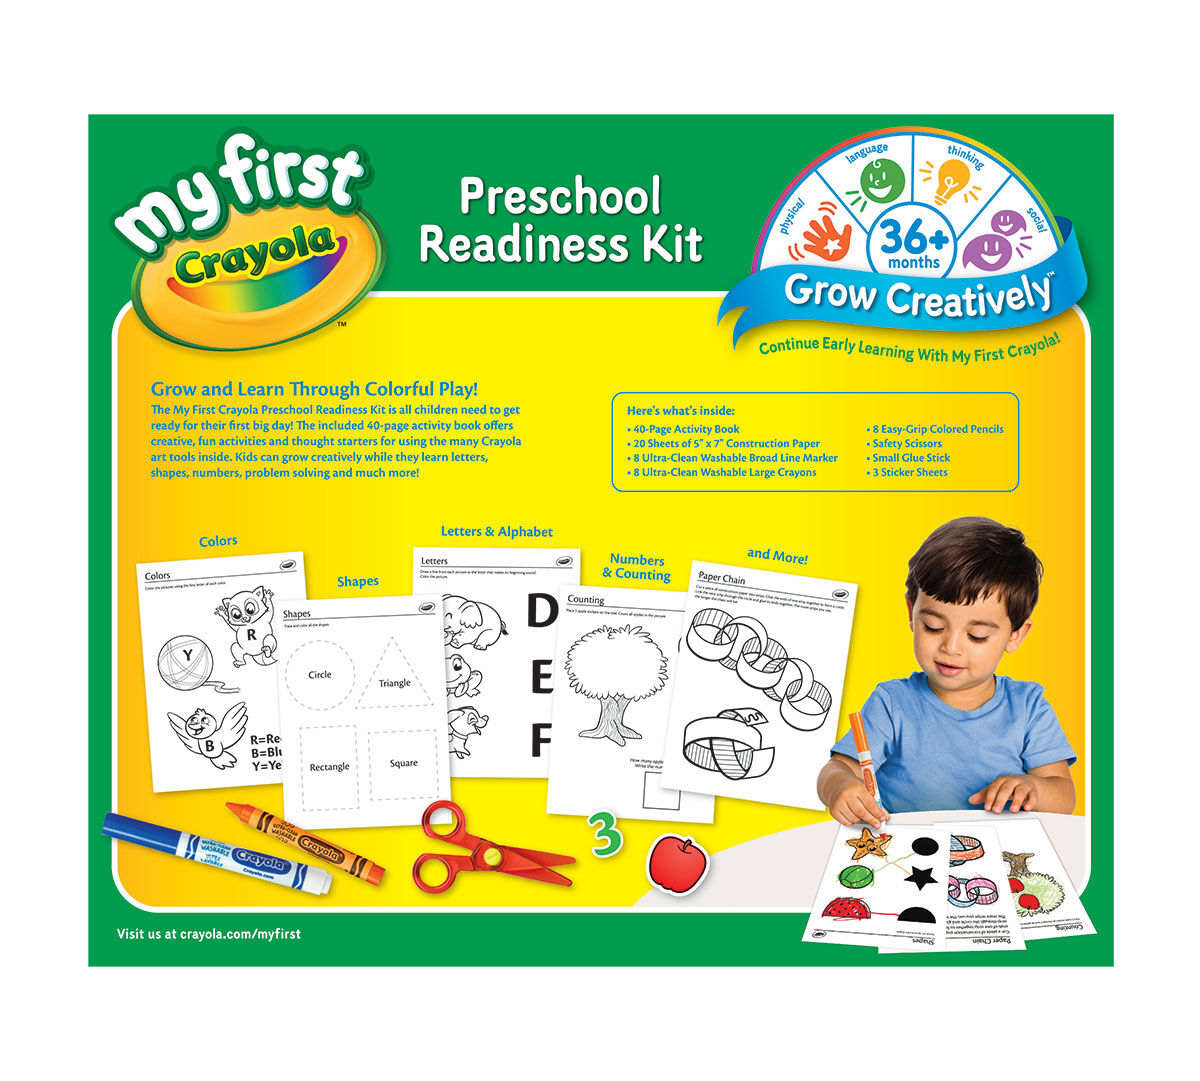 My First Crayola, Preschool Readiness Kit, All-in-One Art Tools and ...